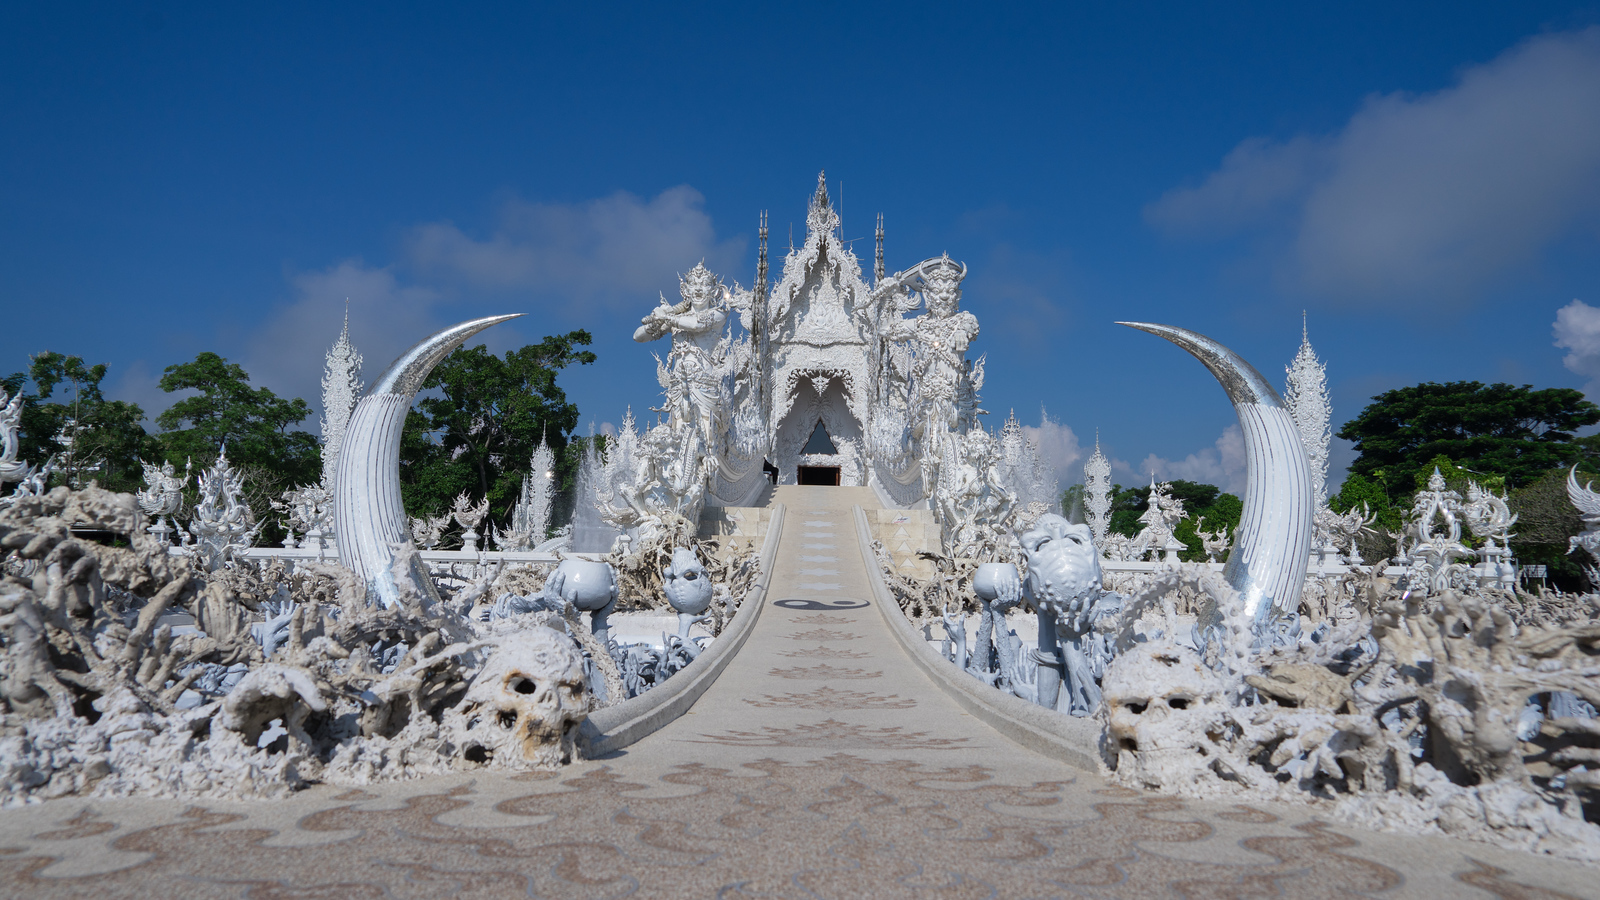 Wat Rong Khun or White Temple in Chiang Rai